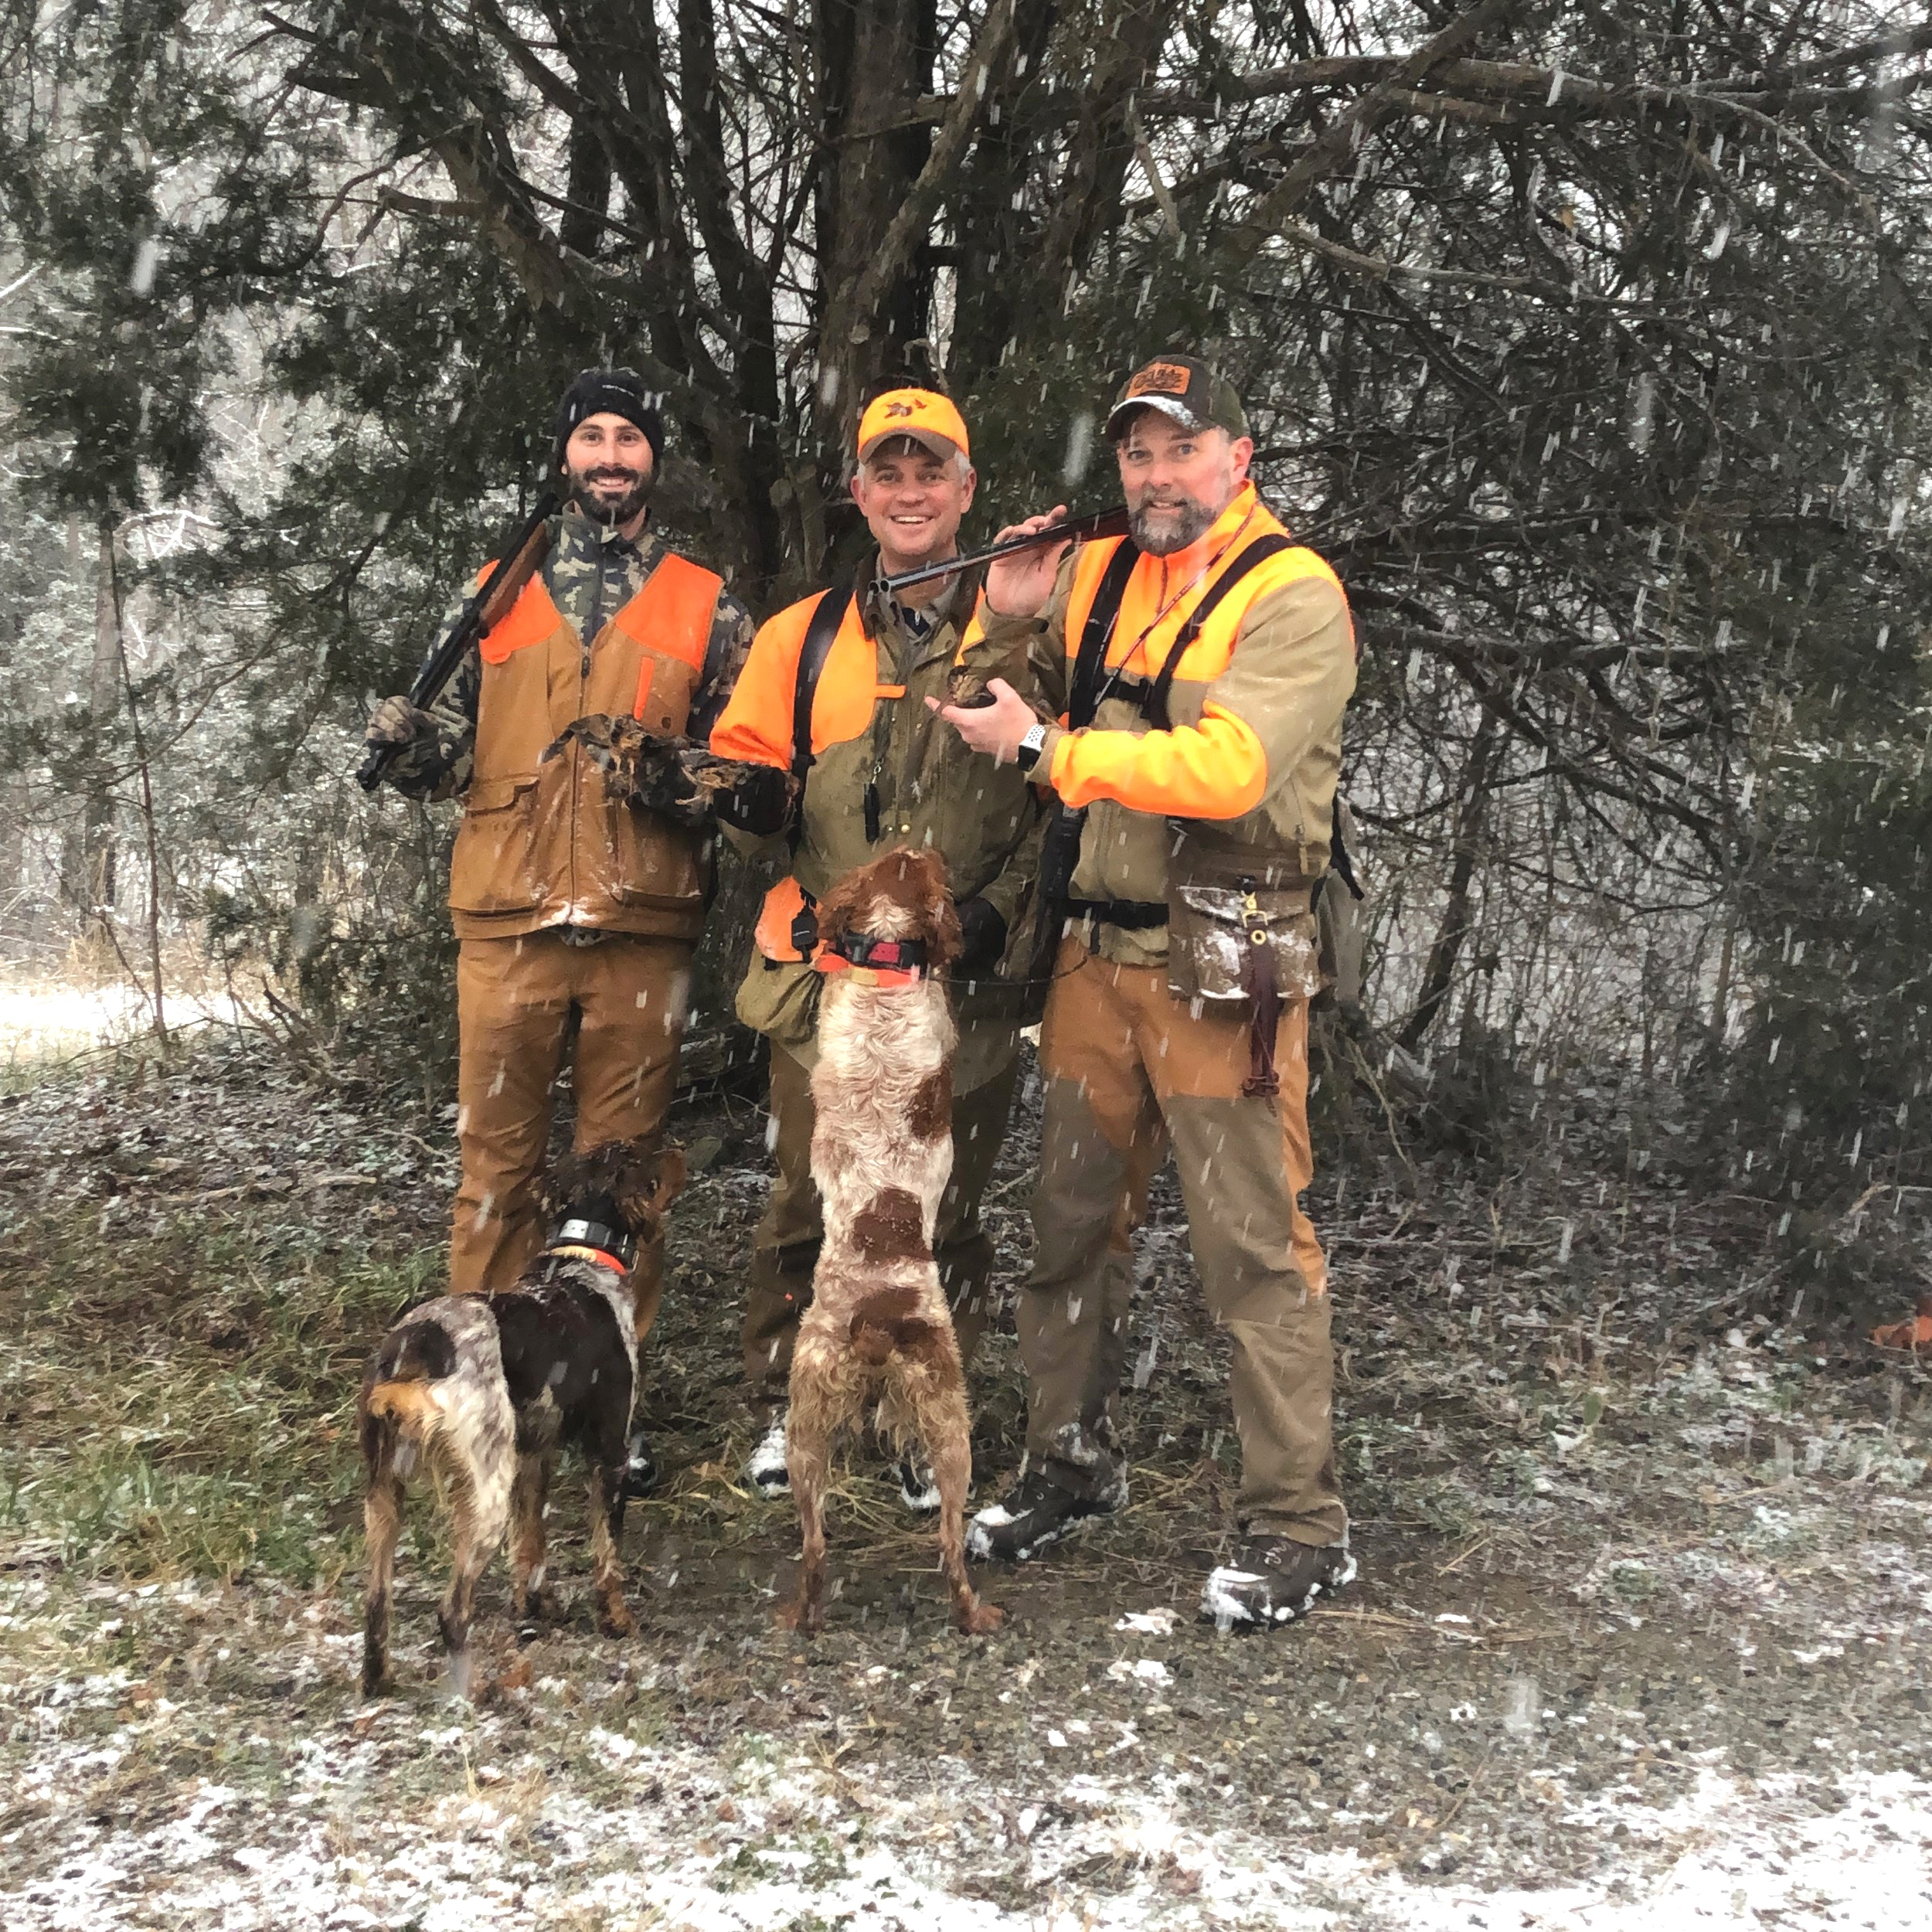 2018-2019 American woodcock season twilight creeping in on the three musketeers, Justin, Chip, and Robb, their harvest, Nova (left), and the canine star of the day, Kona (right).